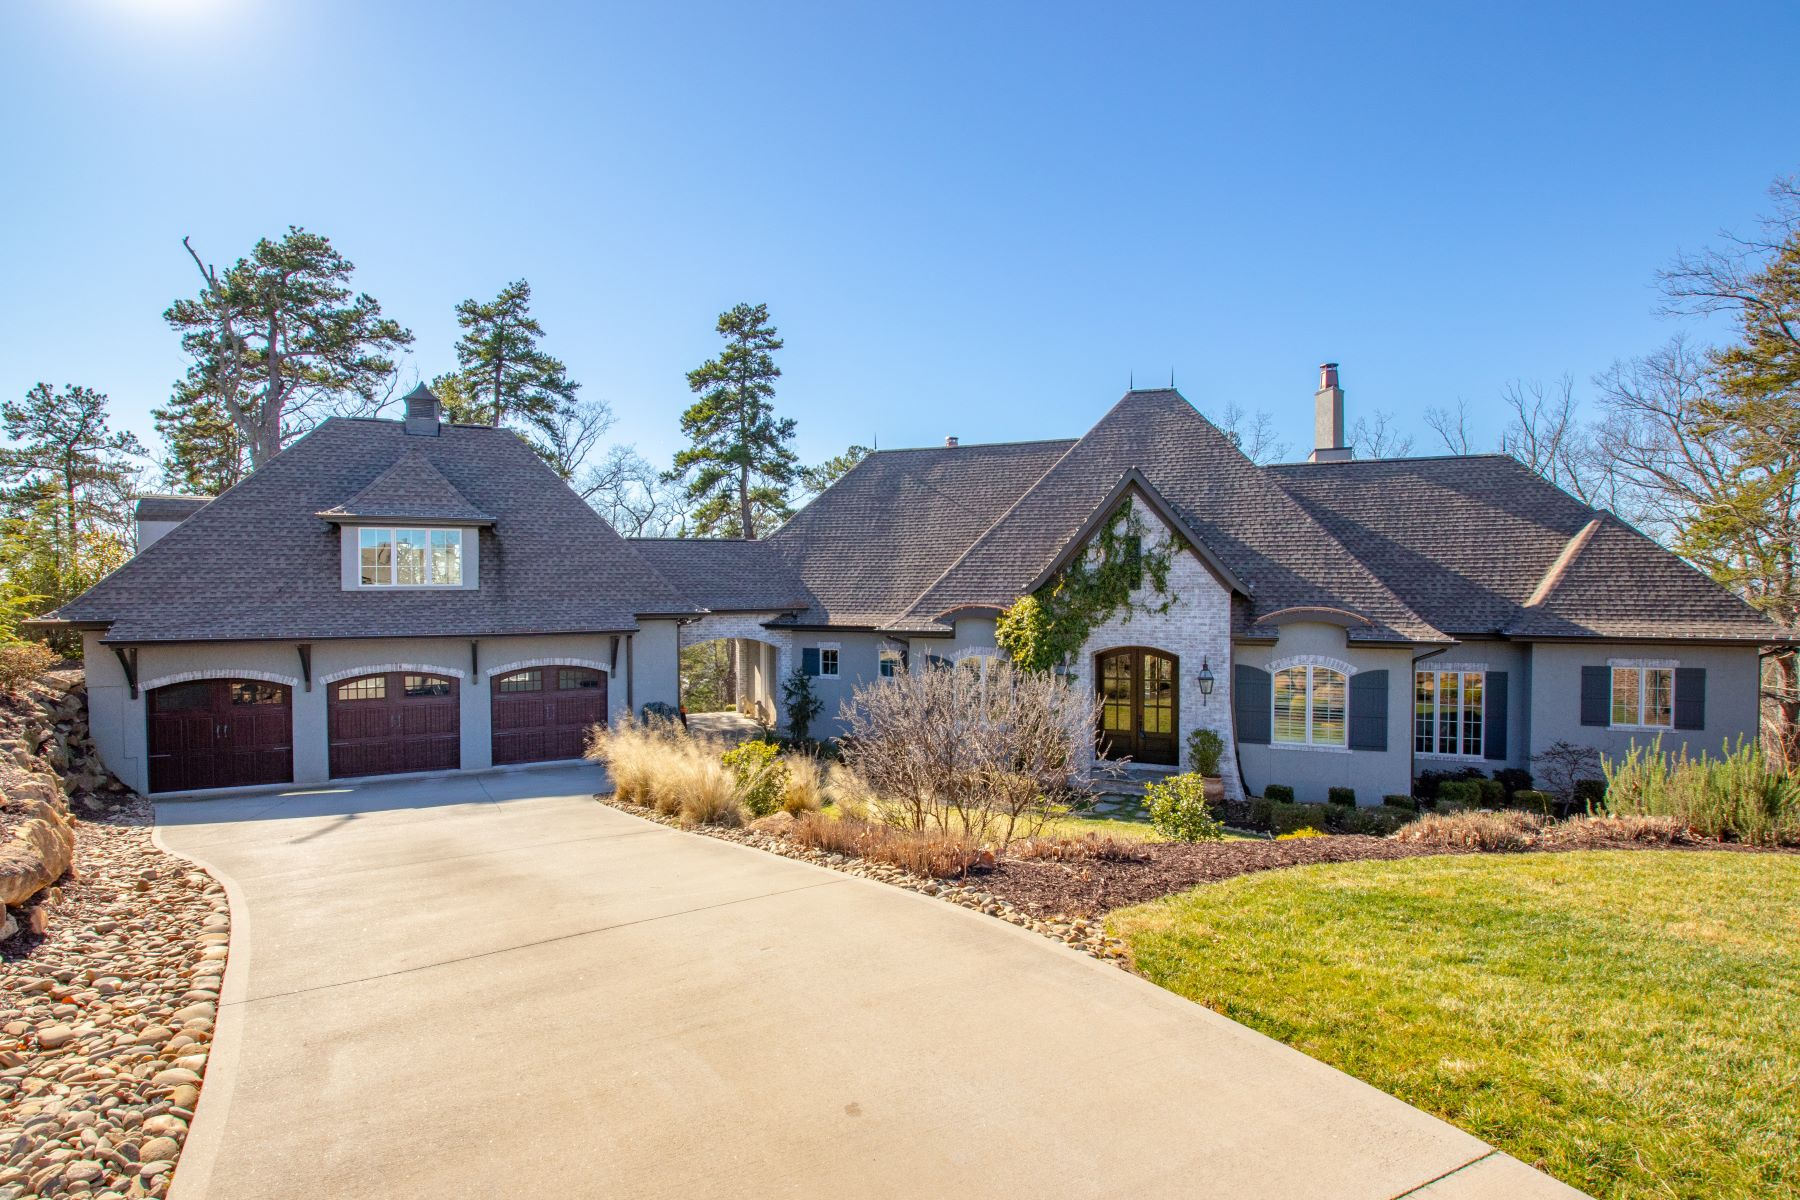 Single Family Homes for Active at Beautiful, custom home with pool, privacy and views in Montebello! 14 Bella Citta Court Greenville, South Carolina 29609 United States